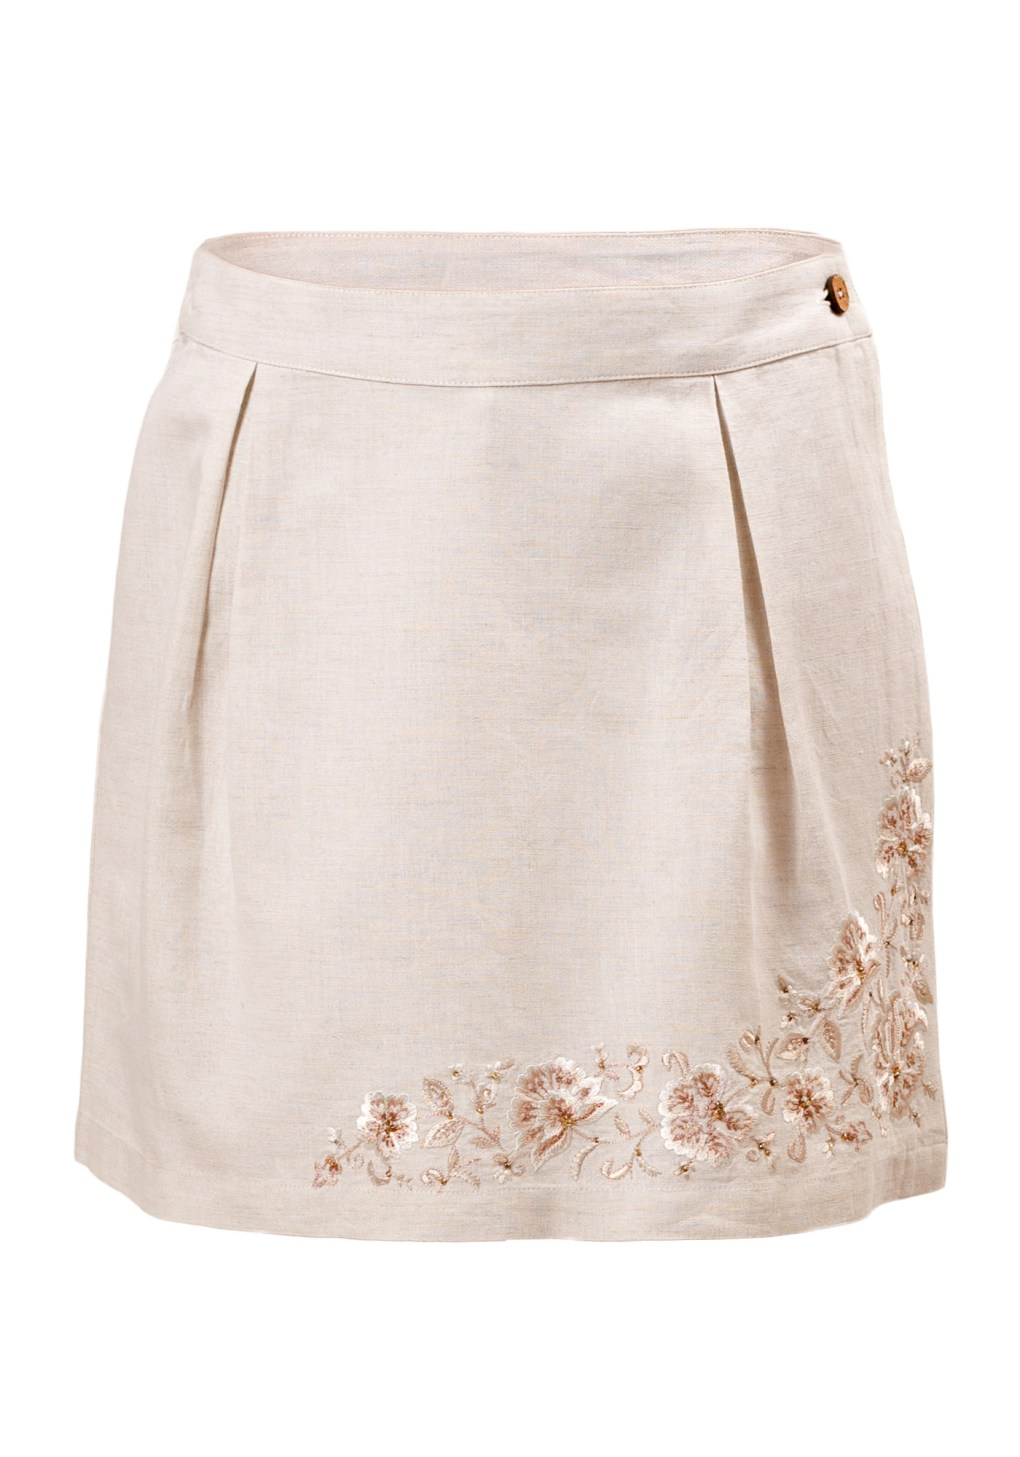 MINC Petite Embroidered Girls Short Skorts in Off White Linen